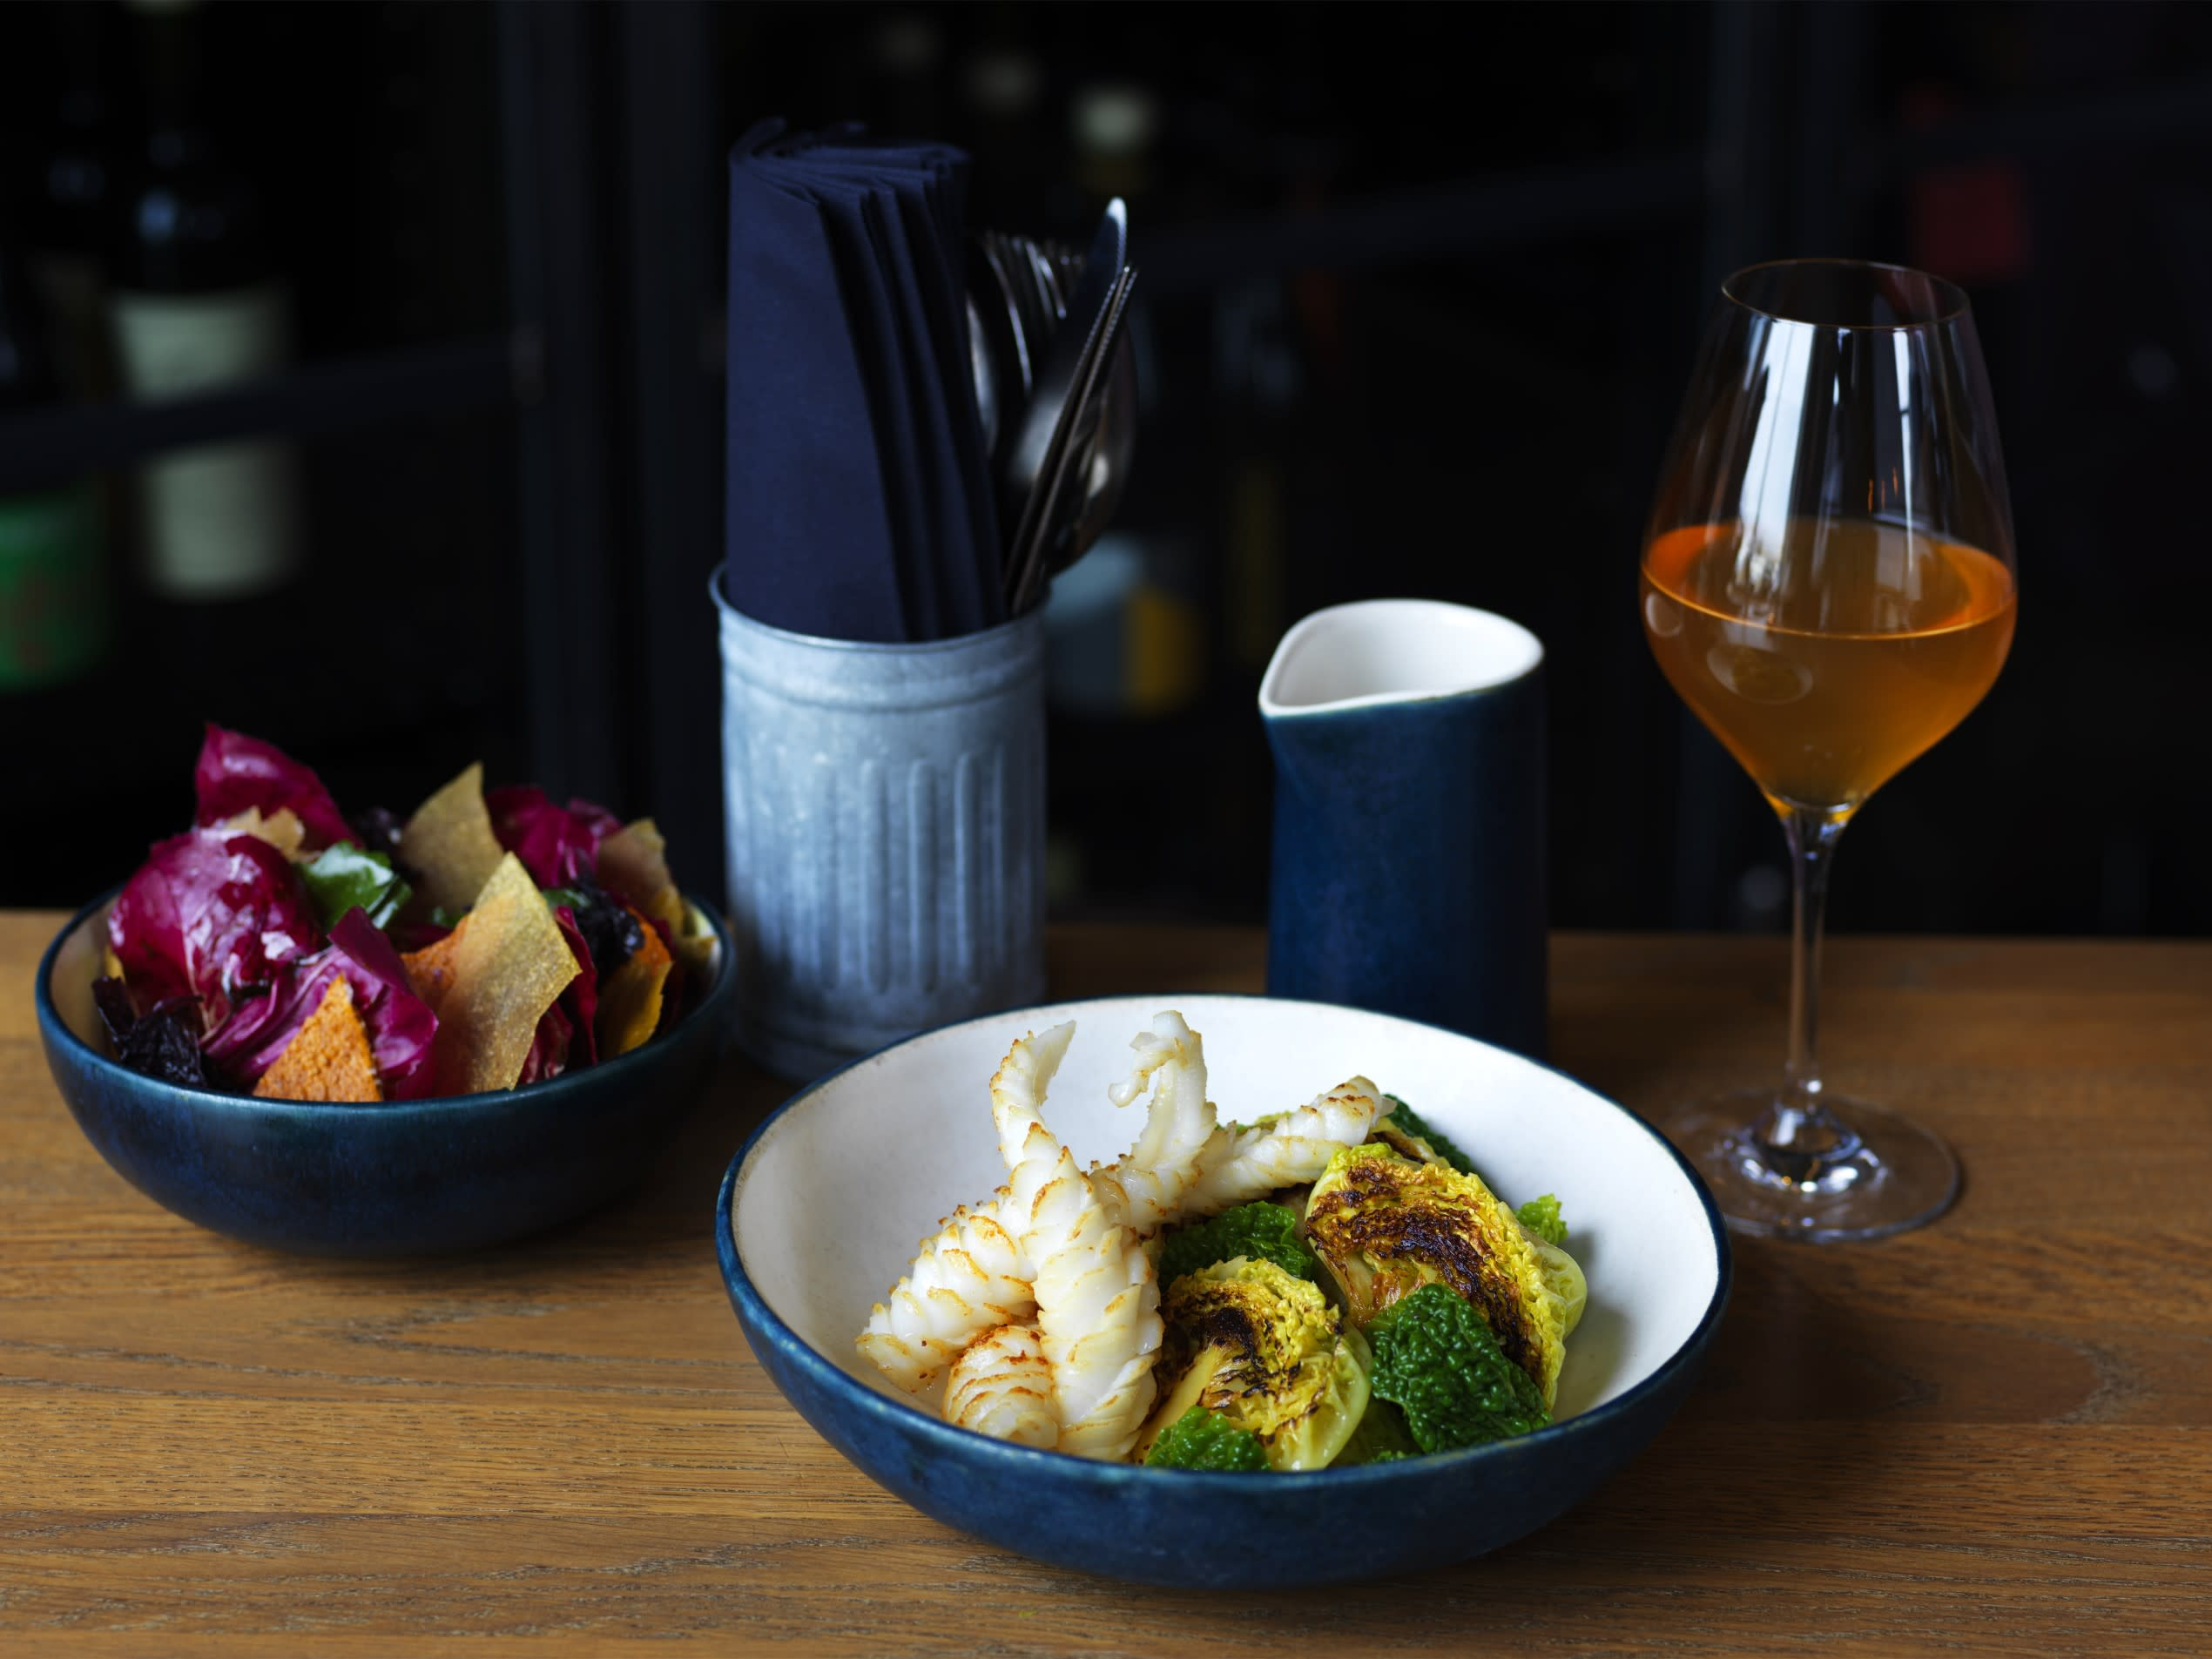 A fish and vegetable dish in blue and white bowls with a glass of bear and cultery positioned to the rear of the image